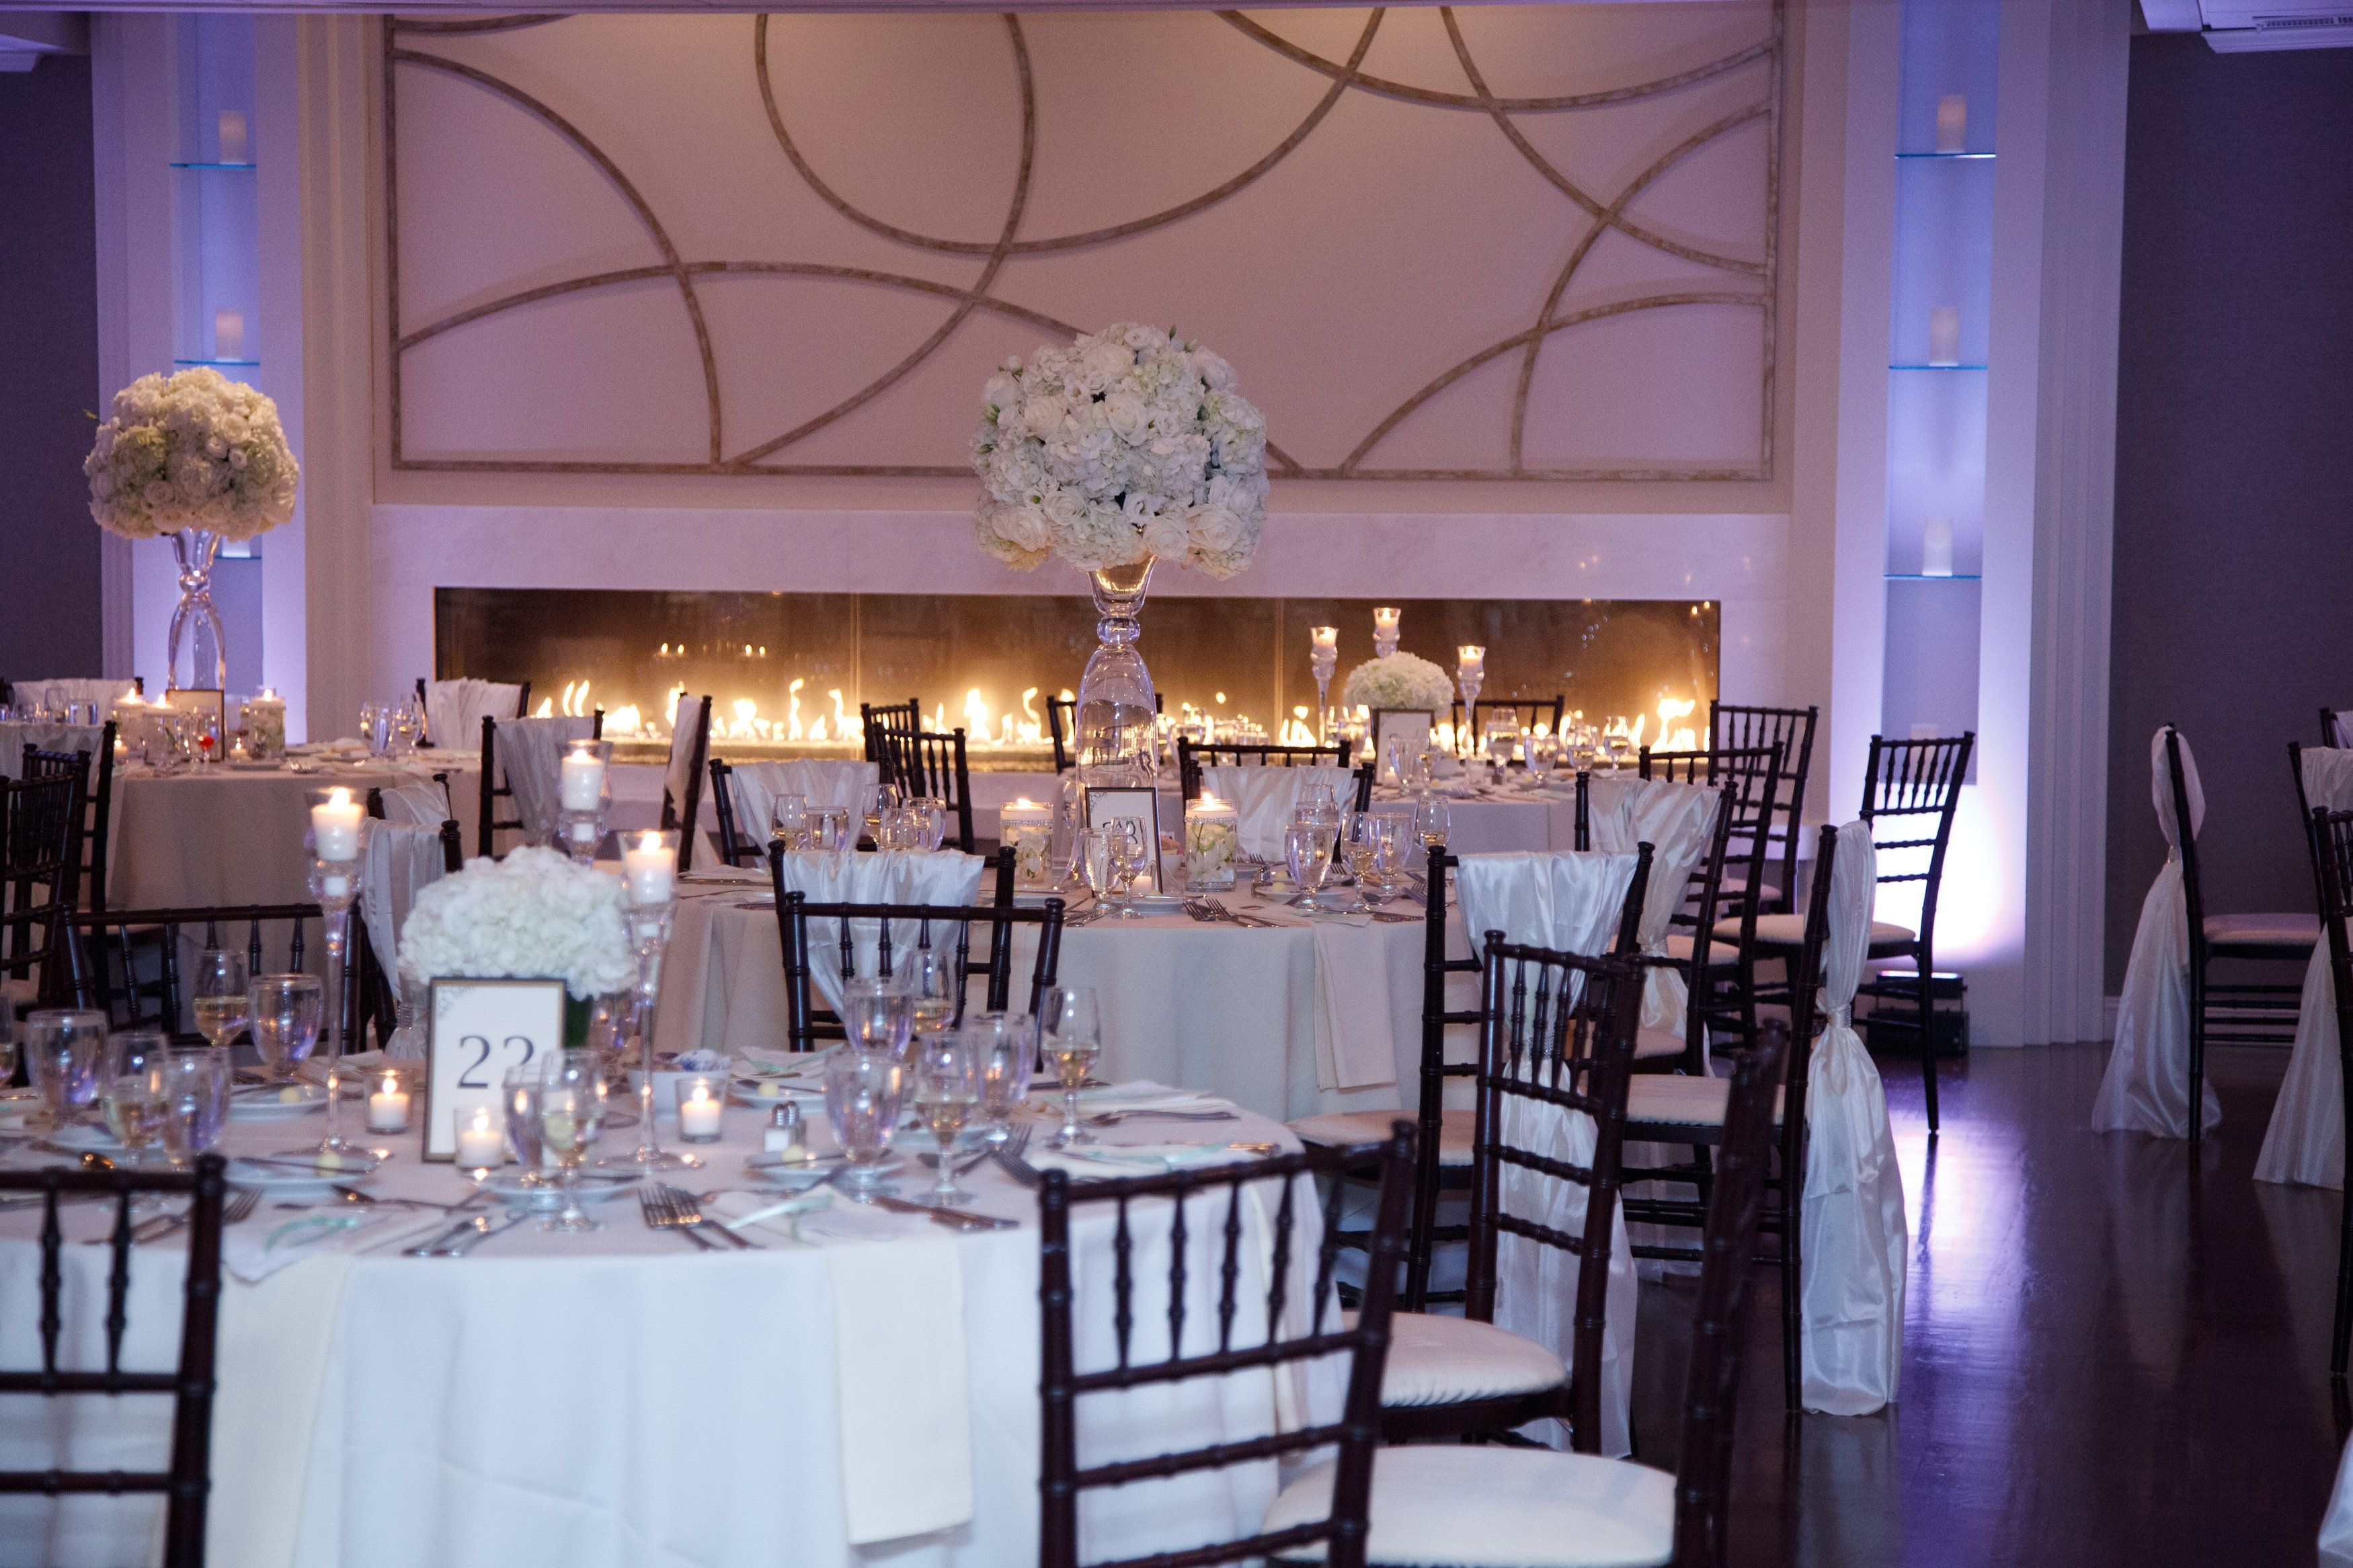 Indoor Outdoor Wedding Venues In Ma At The Villa Saphire Estate Boston Wedding Venues Wedding Boston Outdoor Wedding Venues